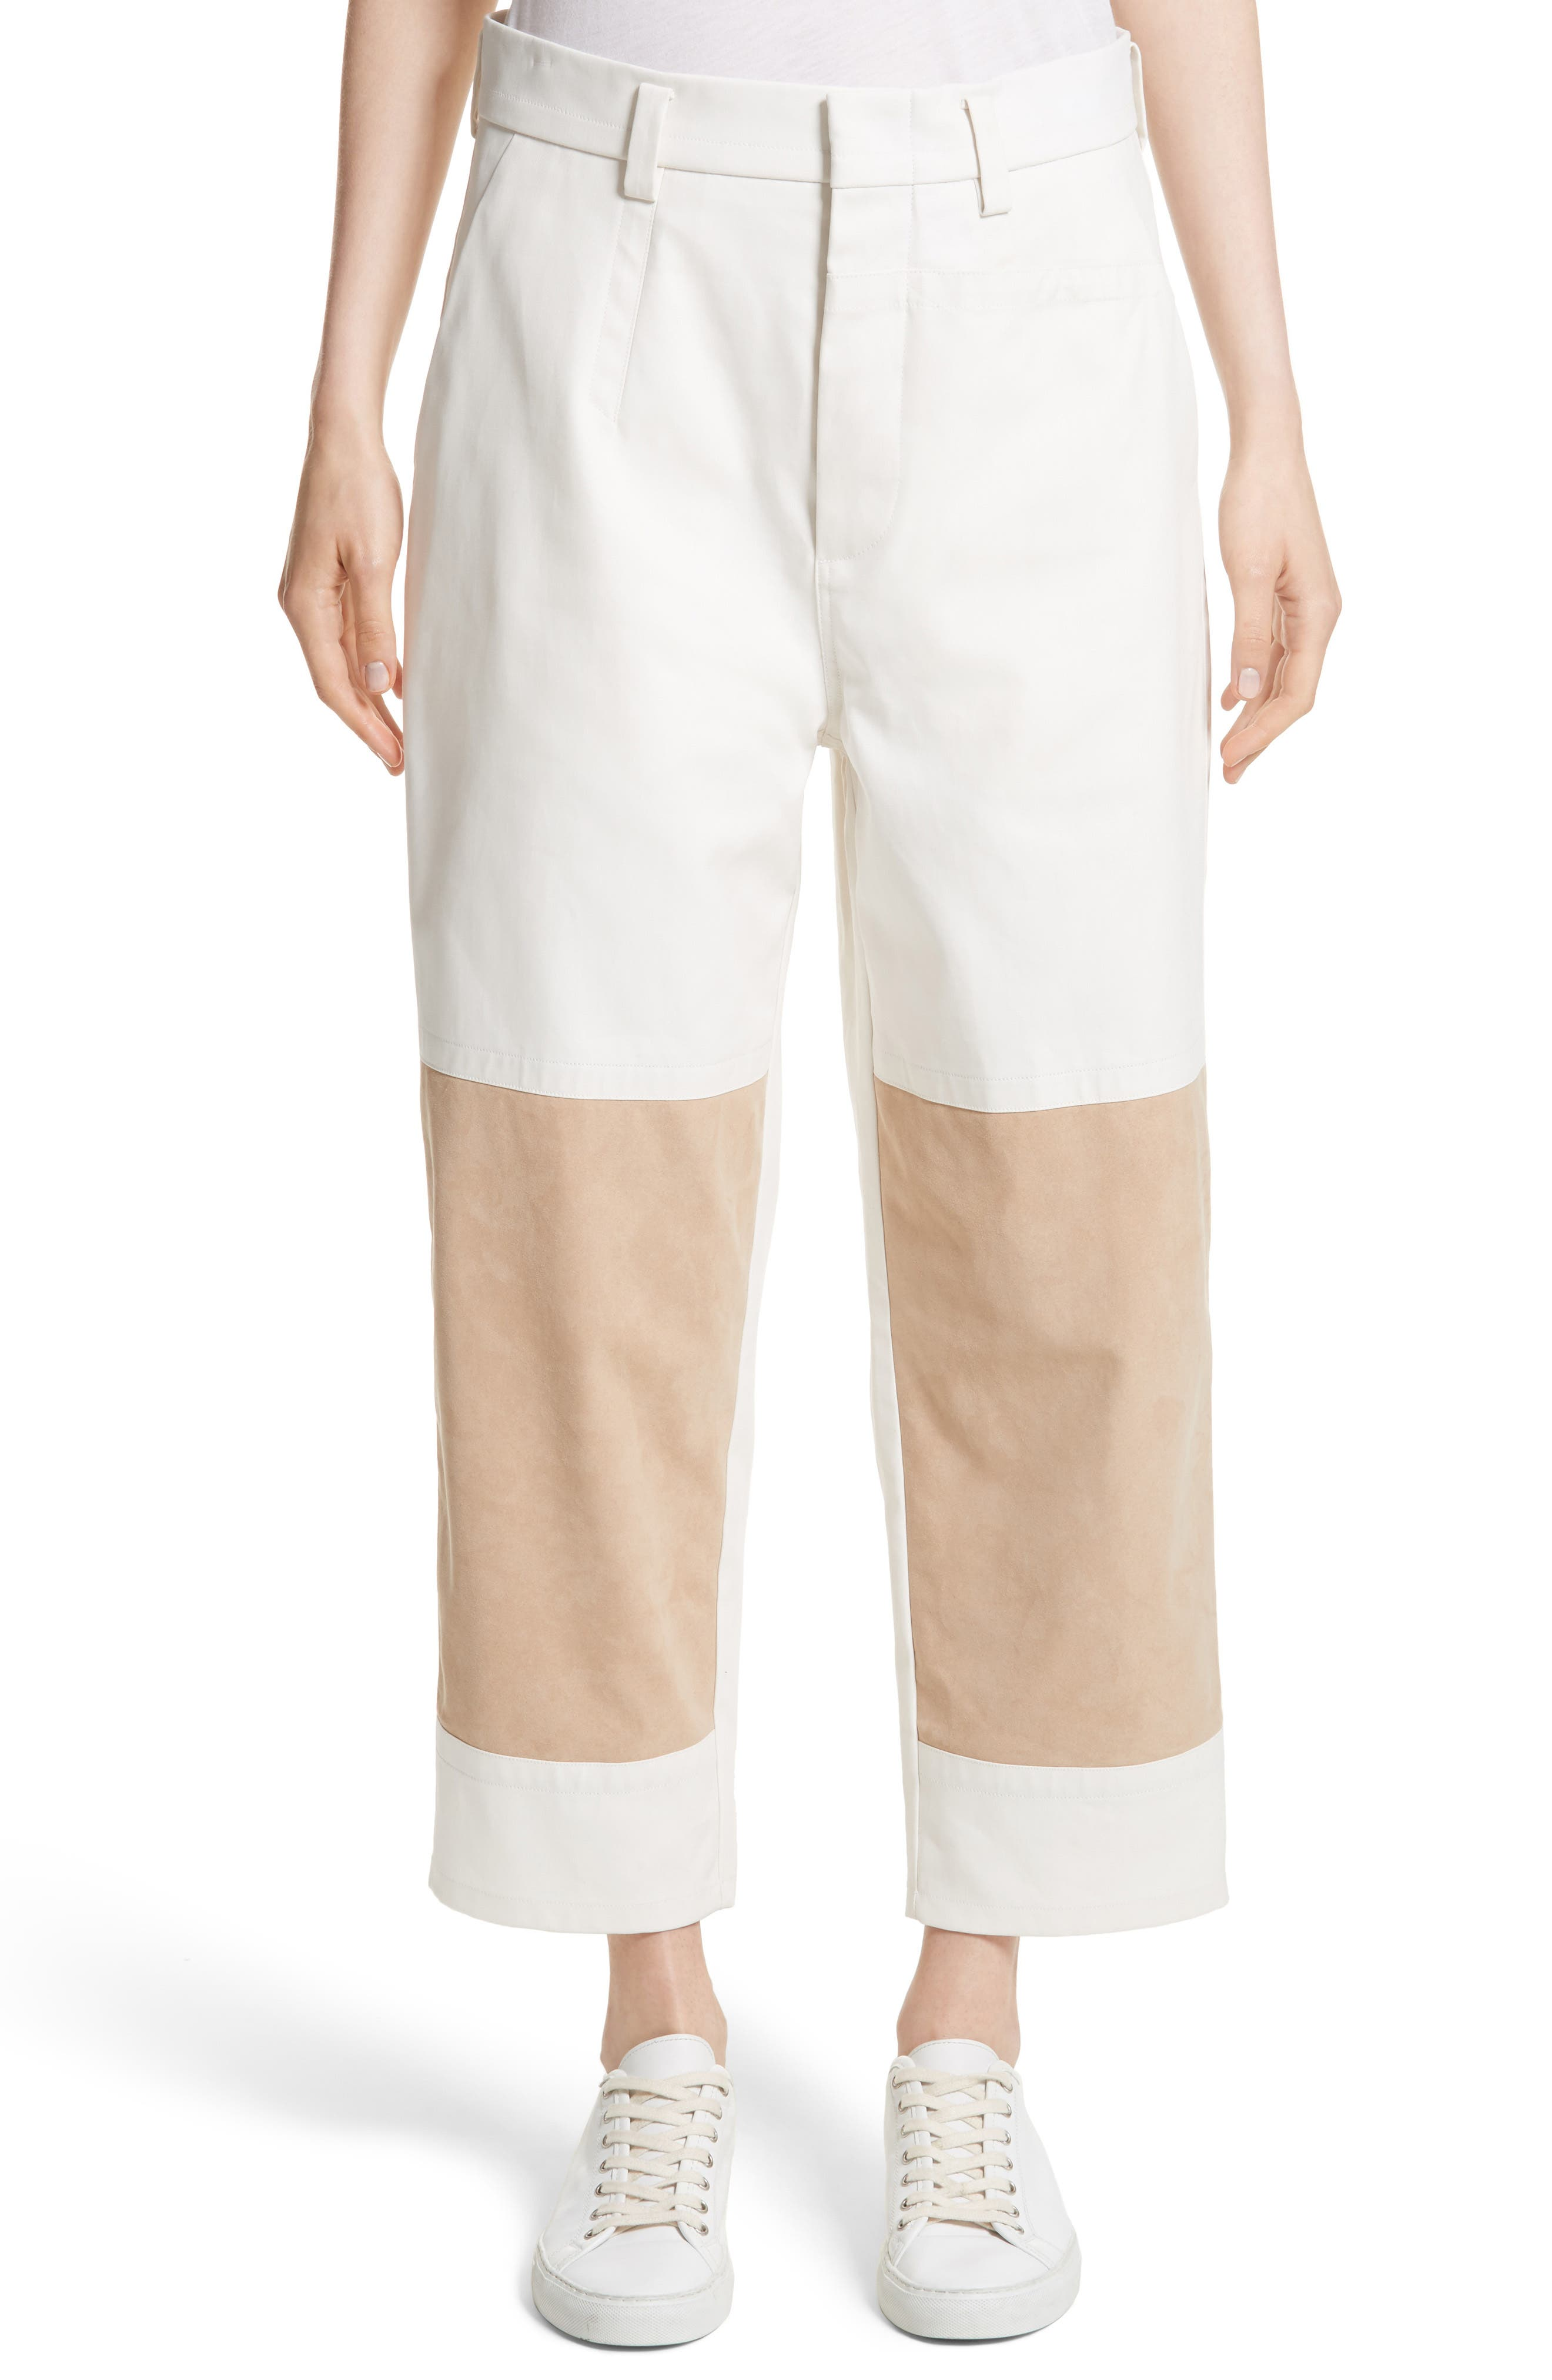 Alternate Image 1 Selected - Sofie D'Hoore Ankle Pants